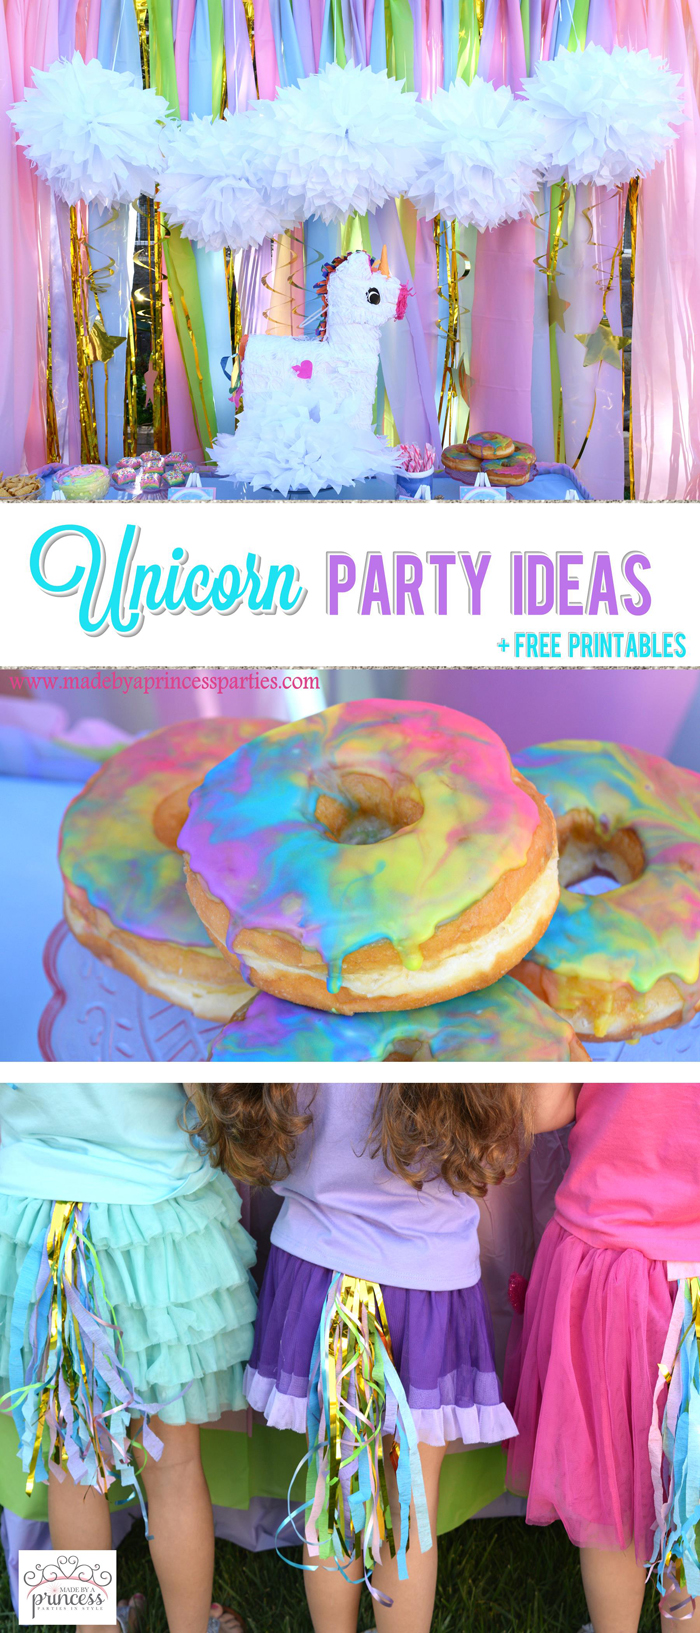 Unicorn Party Ideas Pin it For Later - Made by a Princess #unicorn #unicornparty